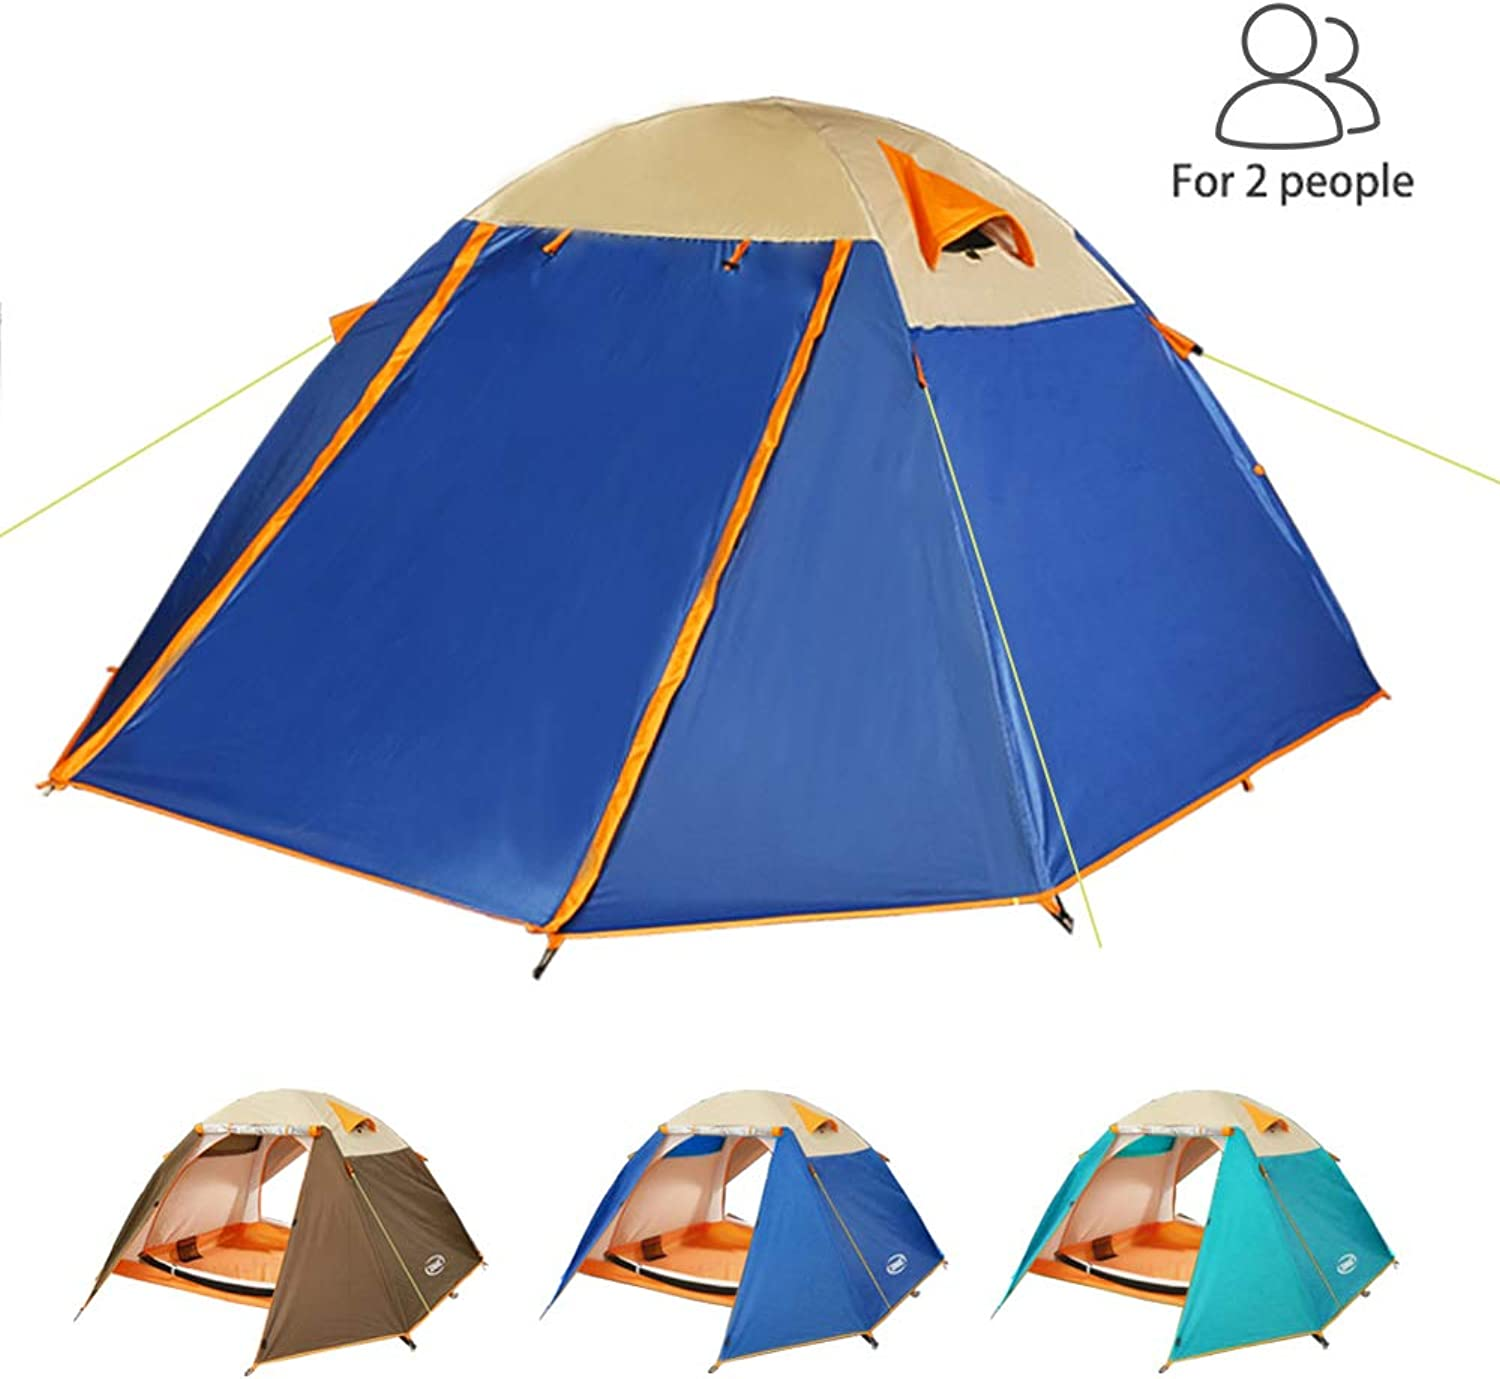 ZOMAKE Lightweight Backpacking Tent 2 Person4 Season Waterproof Camping Tent